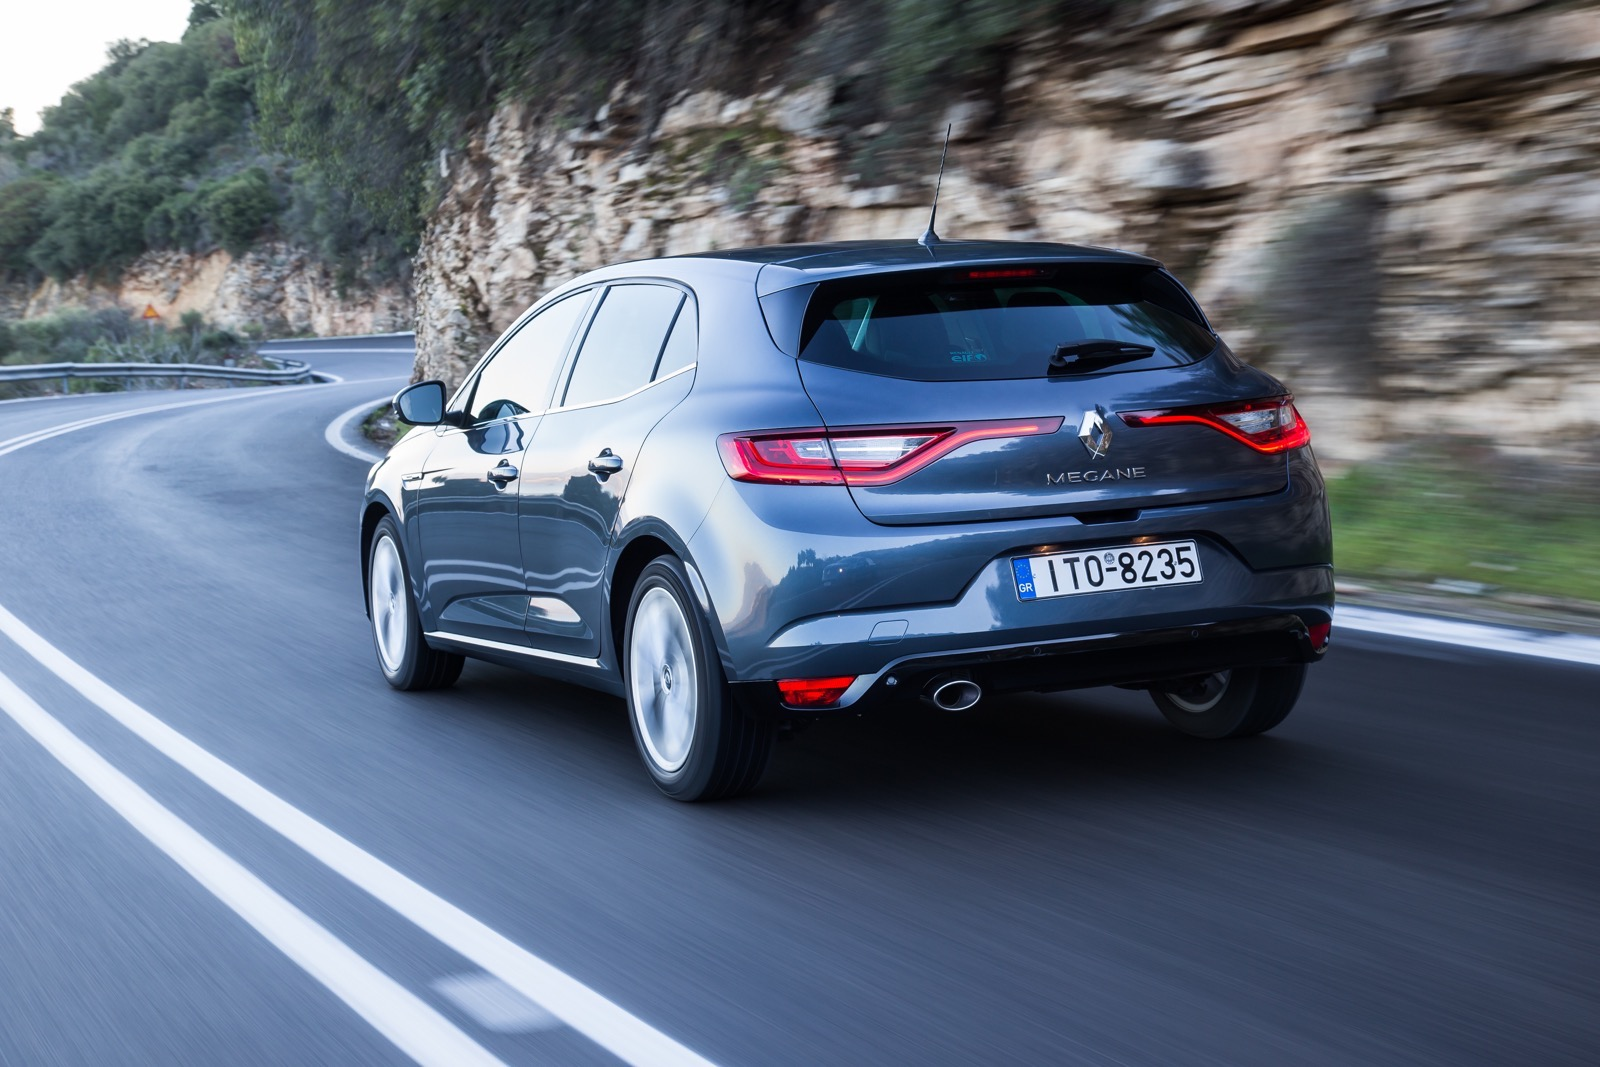 First_Drive_Renault_Megane_124